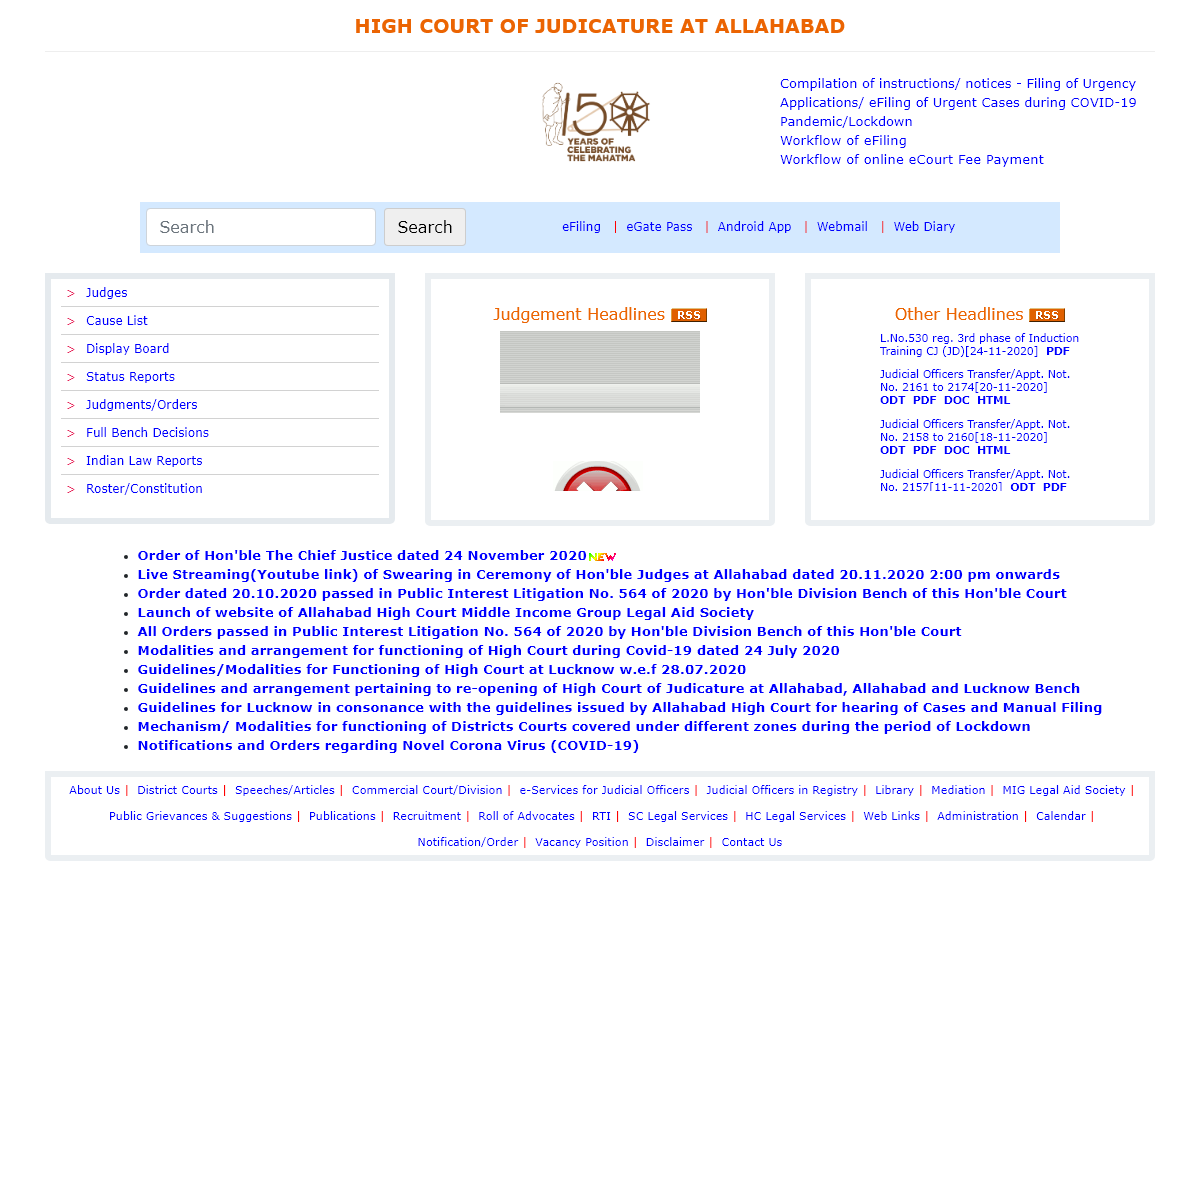 Welcome to the Official Website of the High Court of Judicature at Allahabad and its Bench at Lucknow, U.P., India